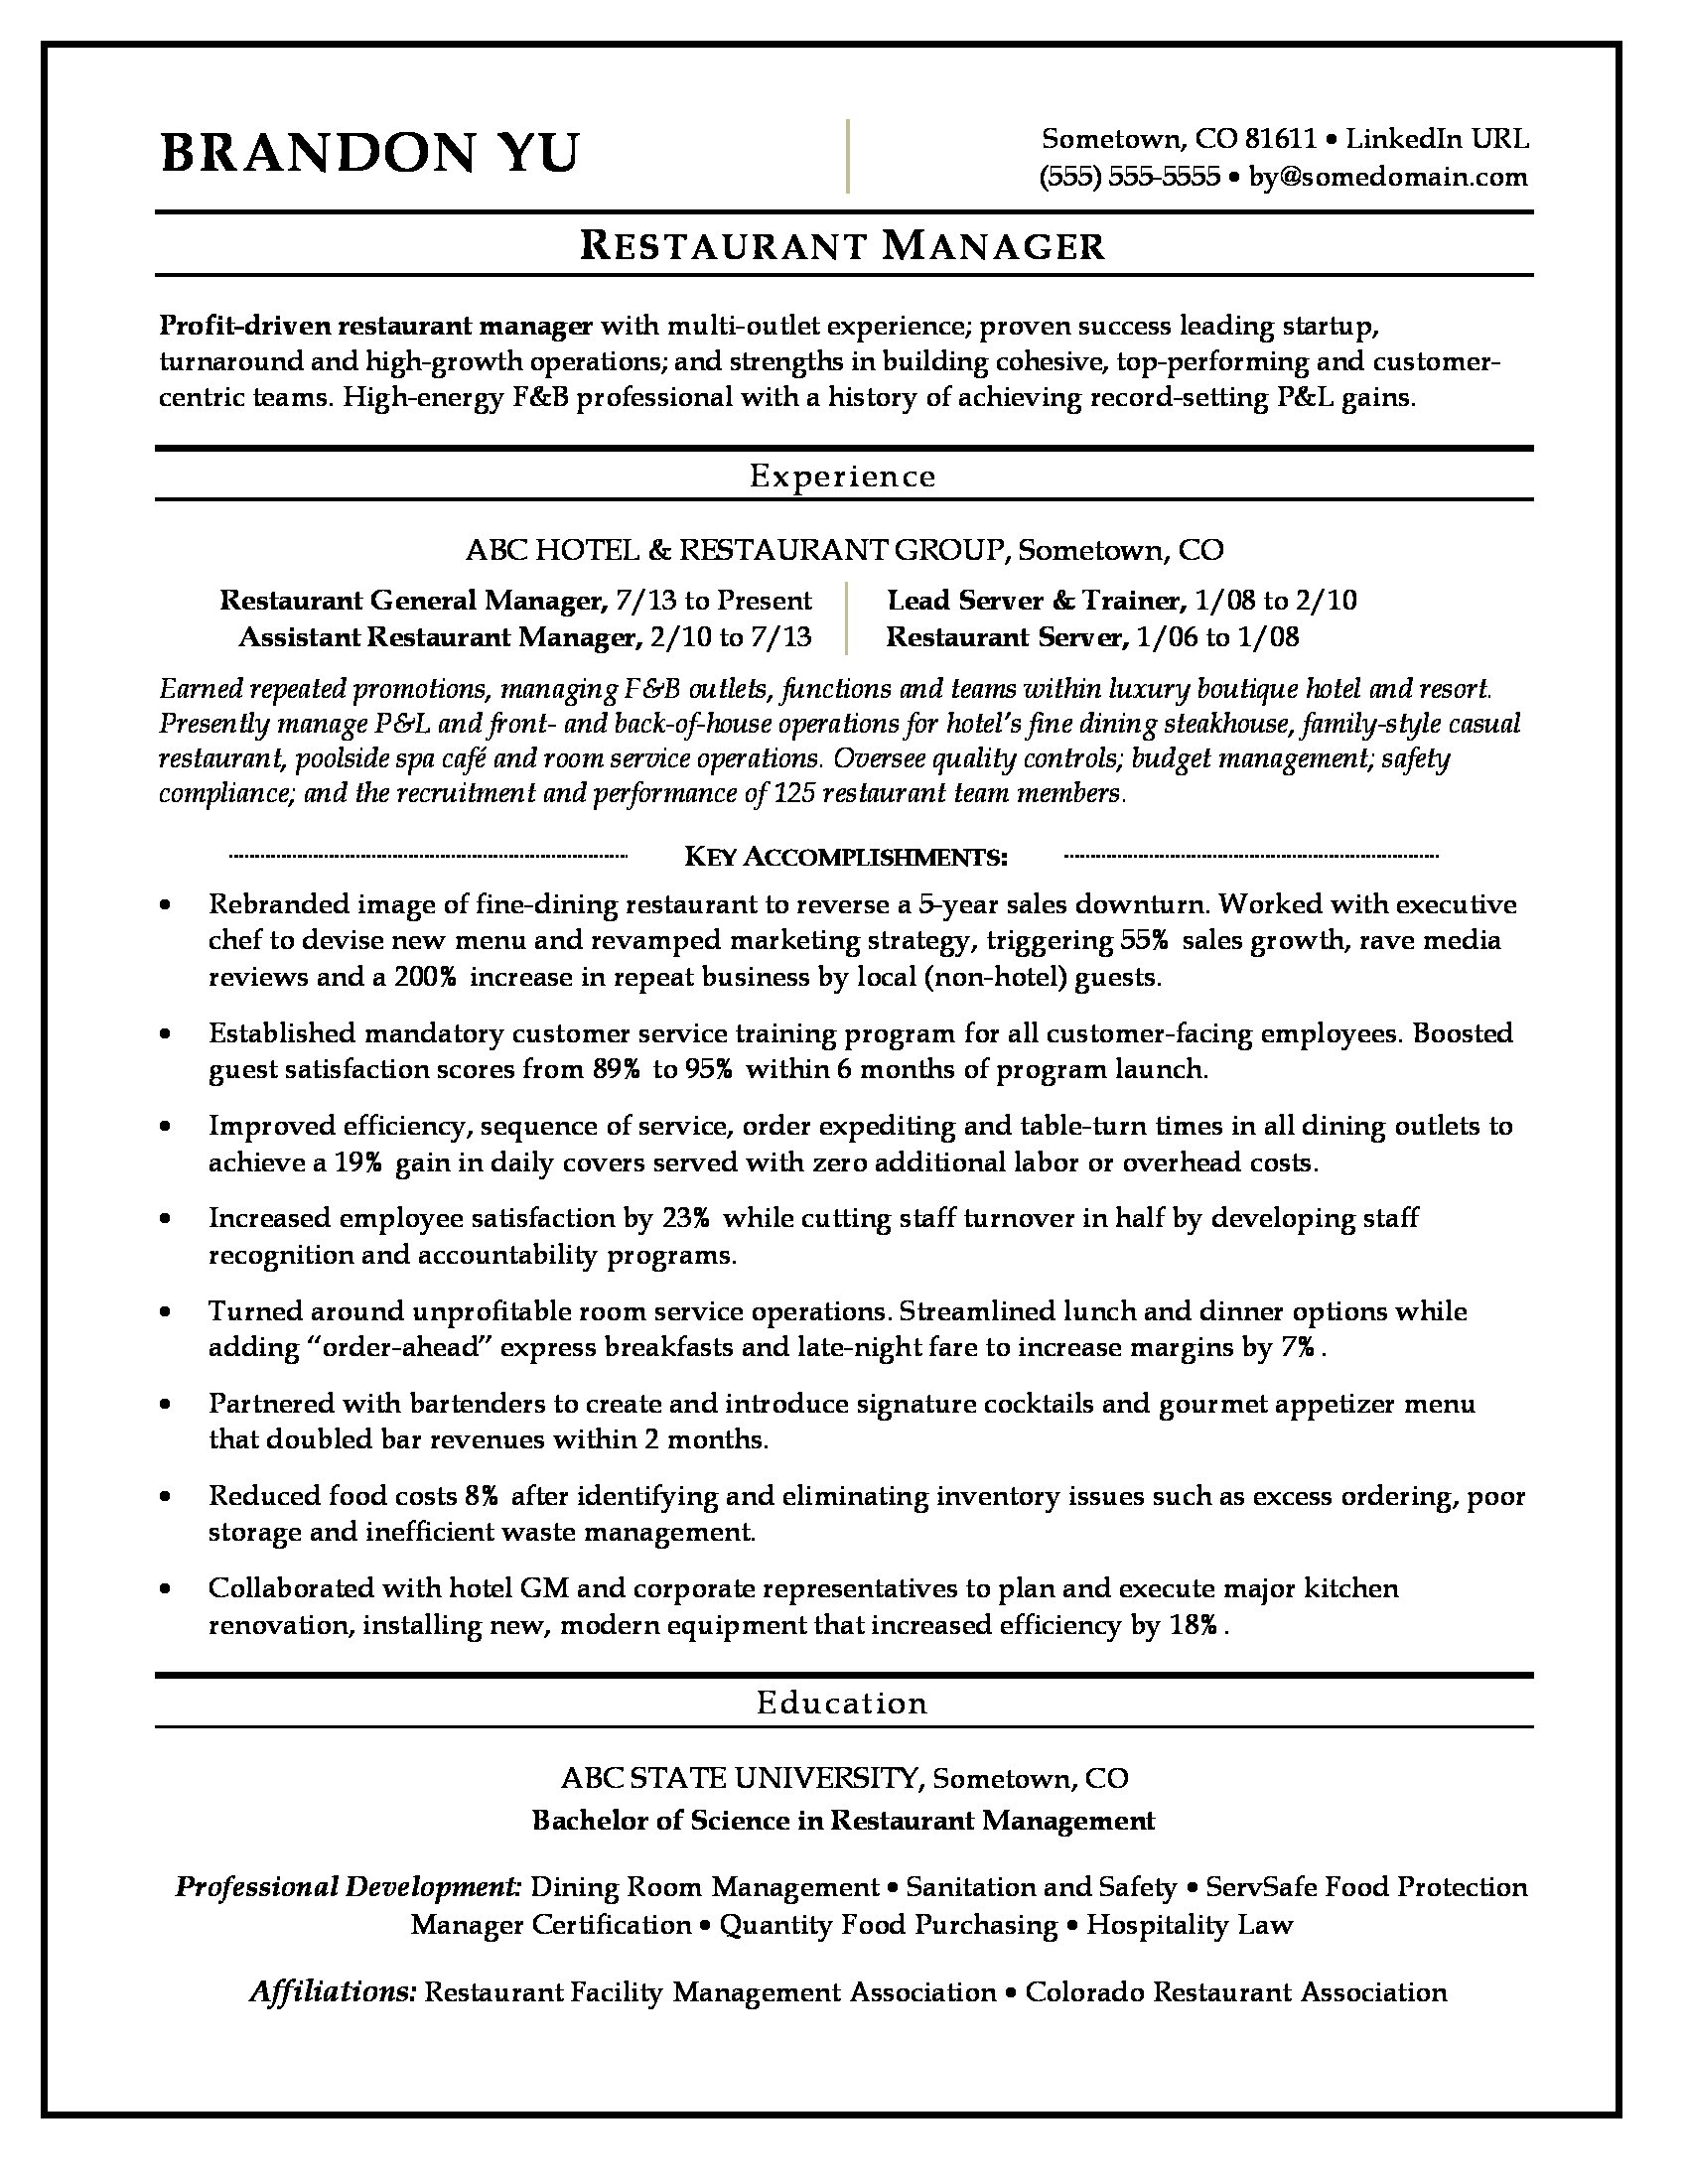 resume ideas for managers